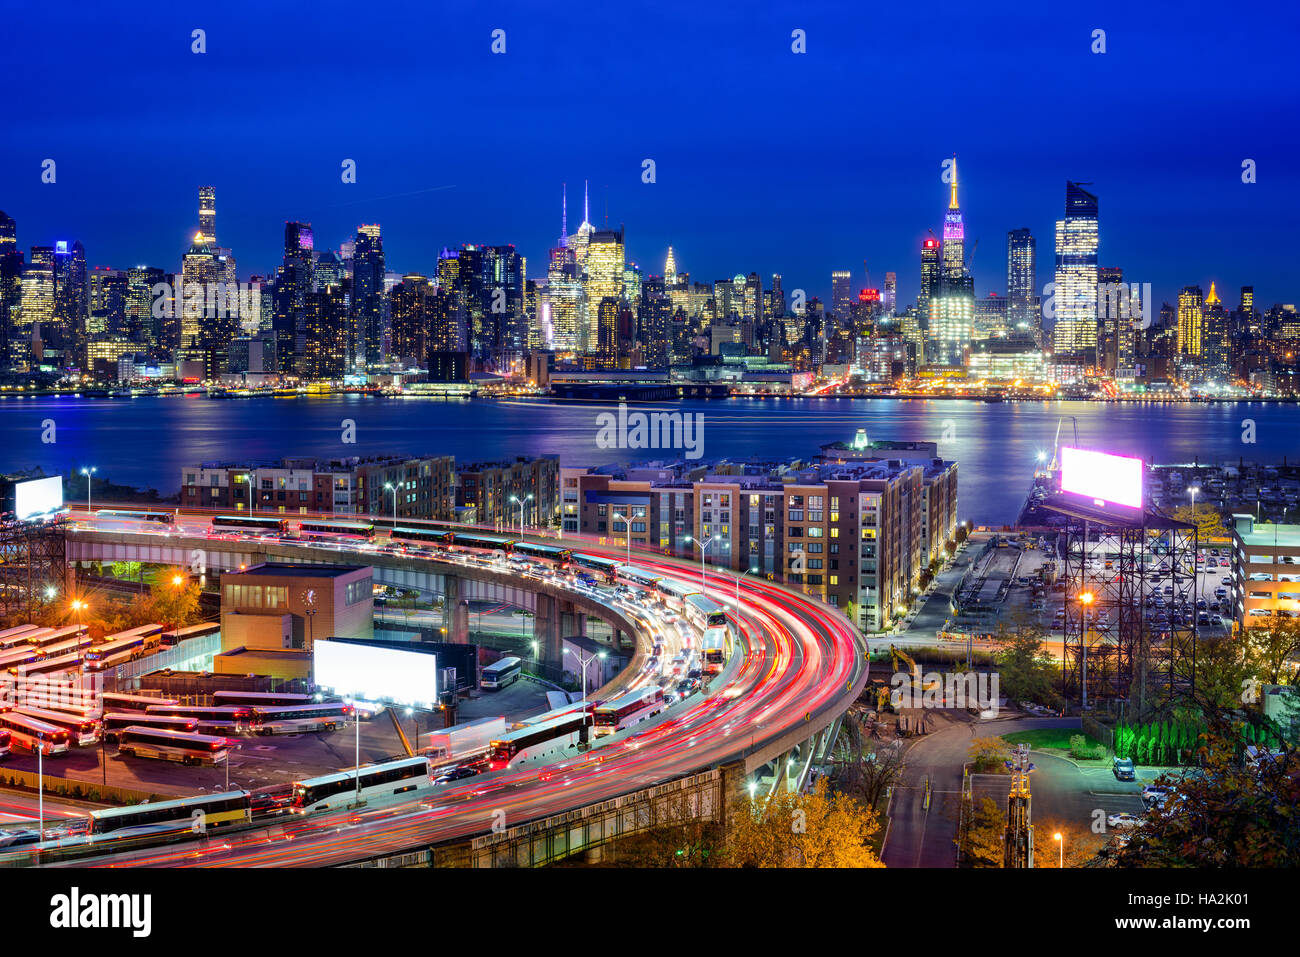 New York City skyline over The Helix Loop. - Stock Image